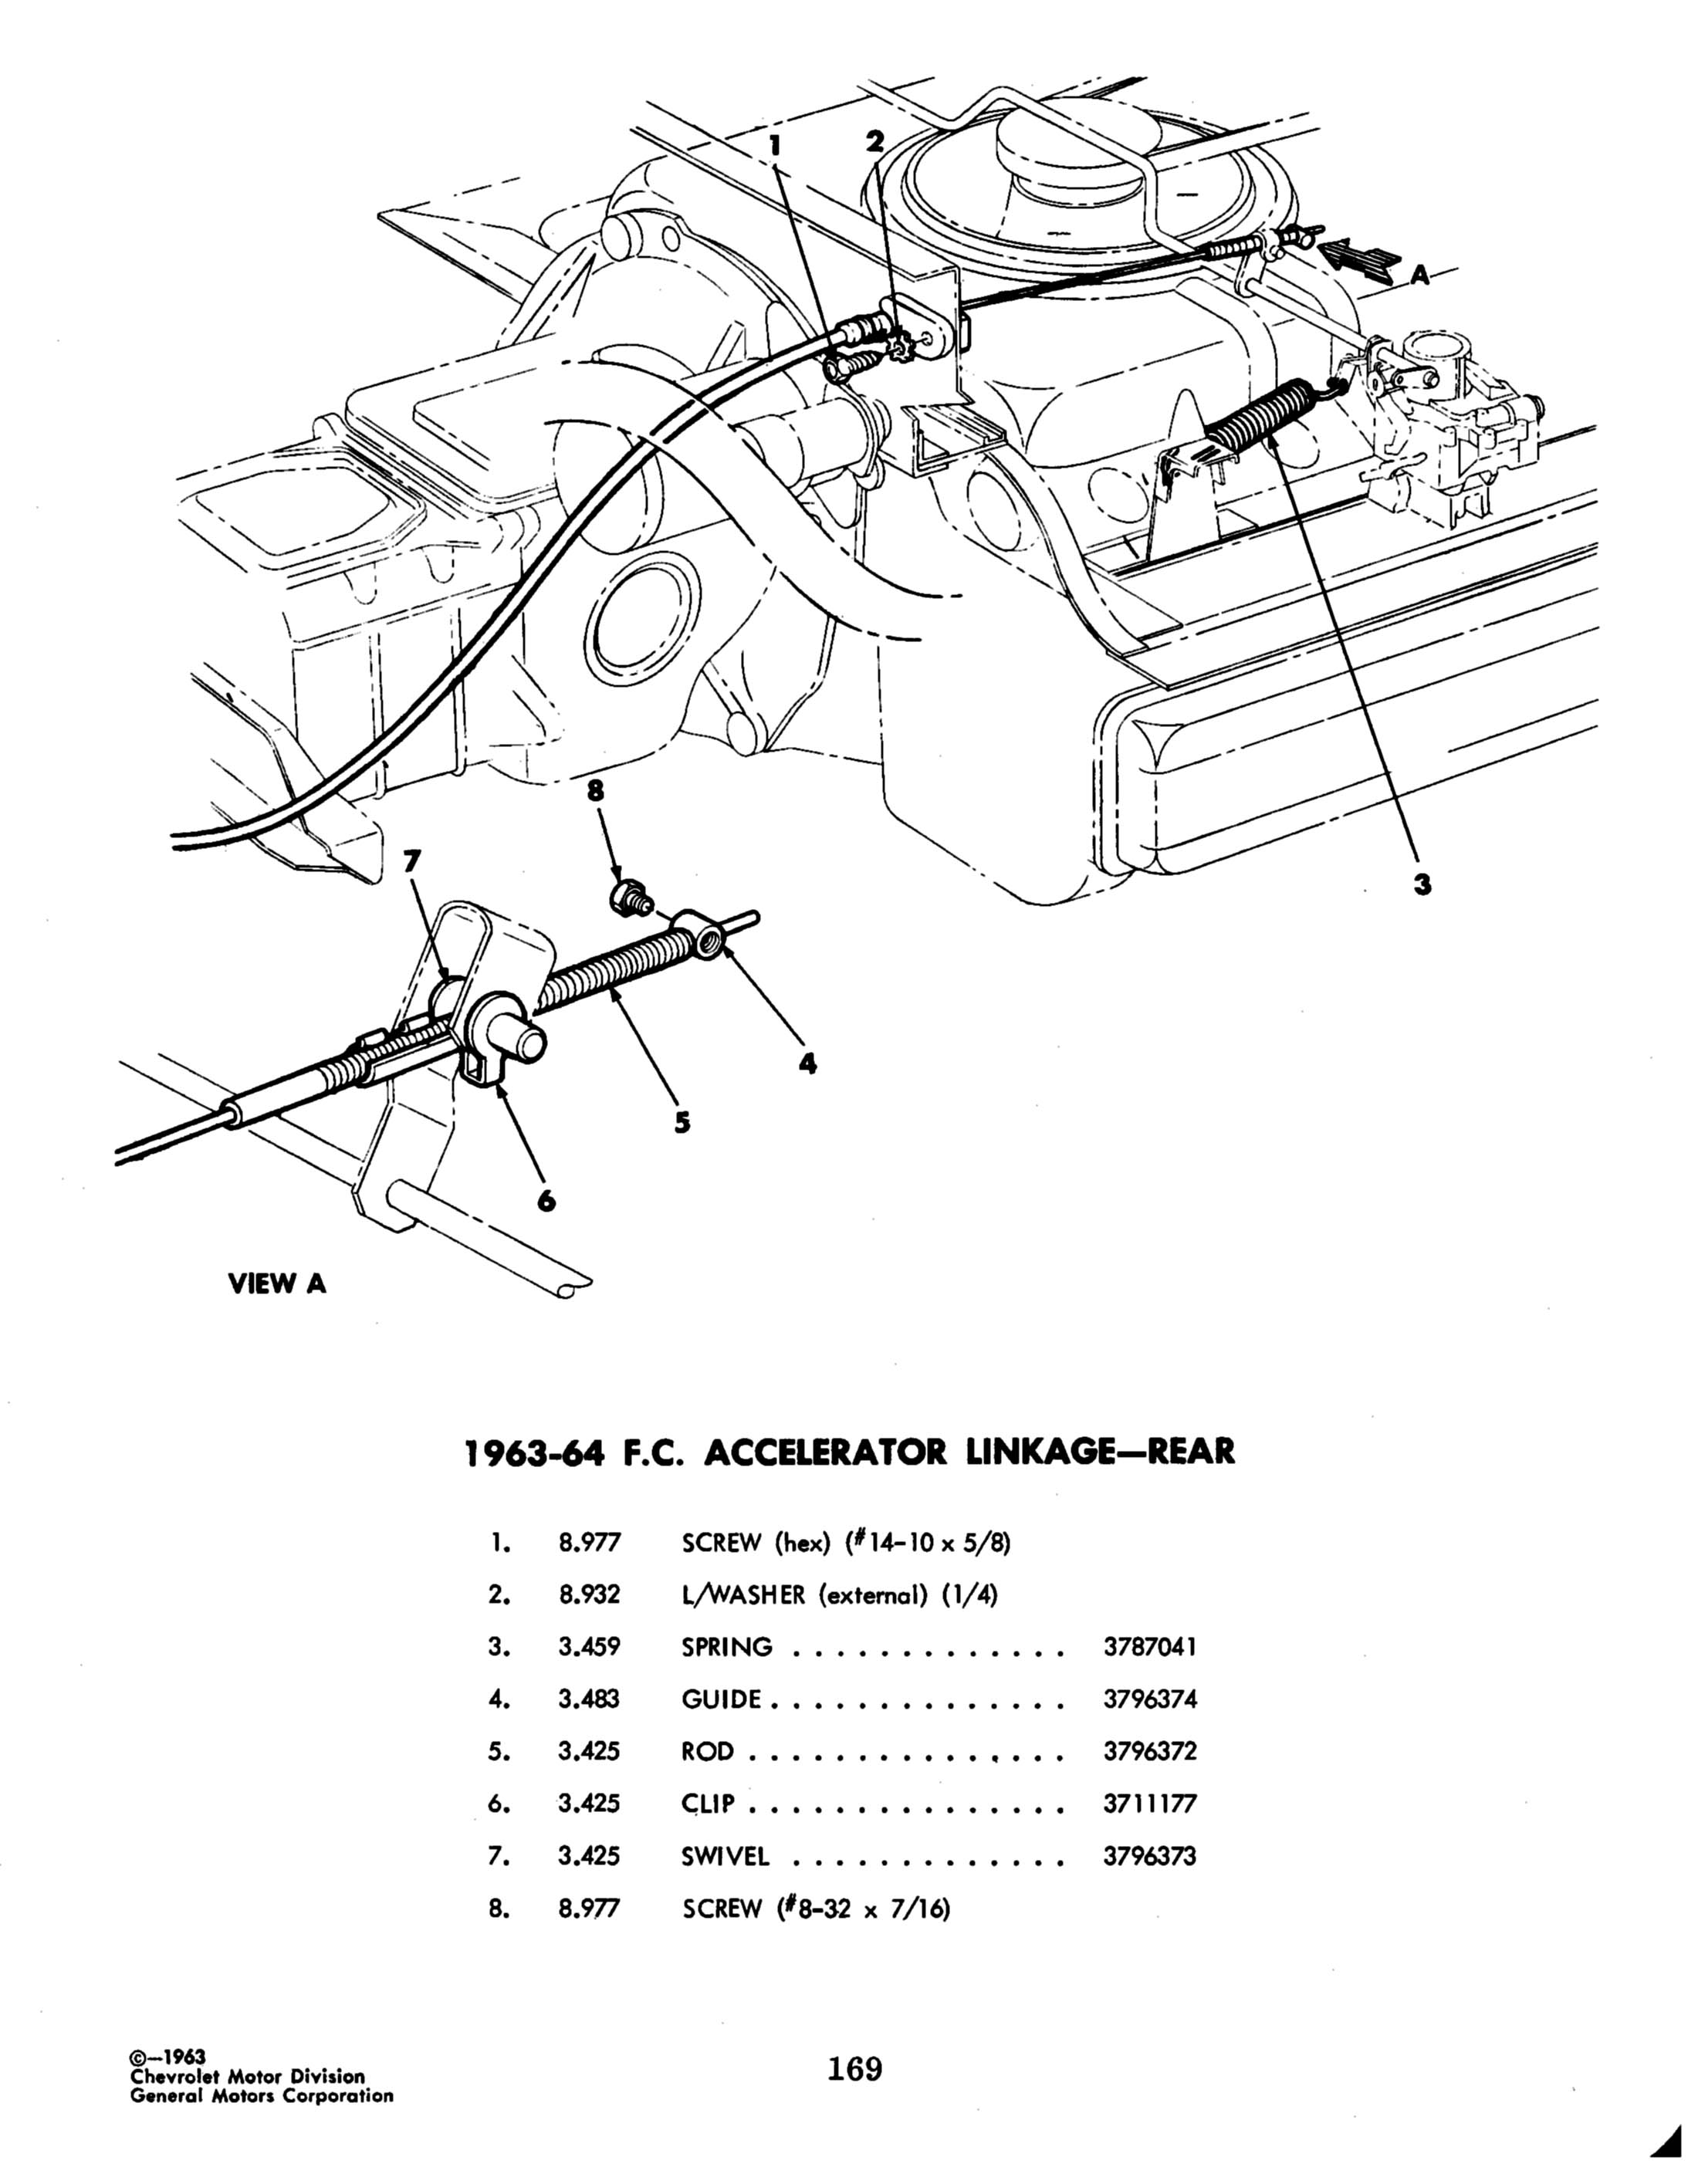 Wiring Diagram For 1964 Chevrolet Corvair Greenbrier 1964